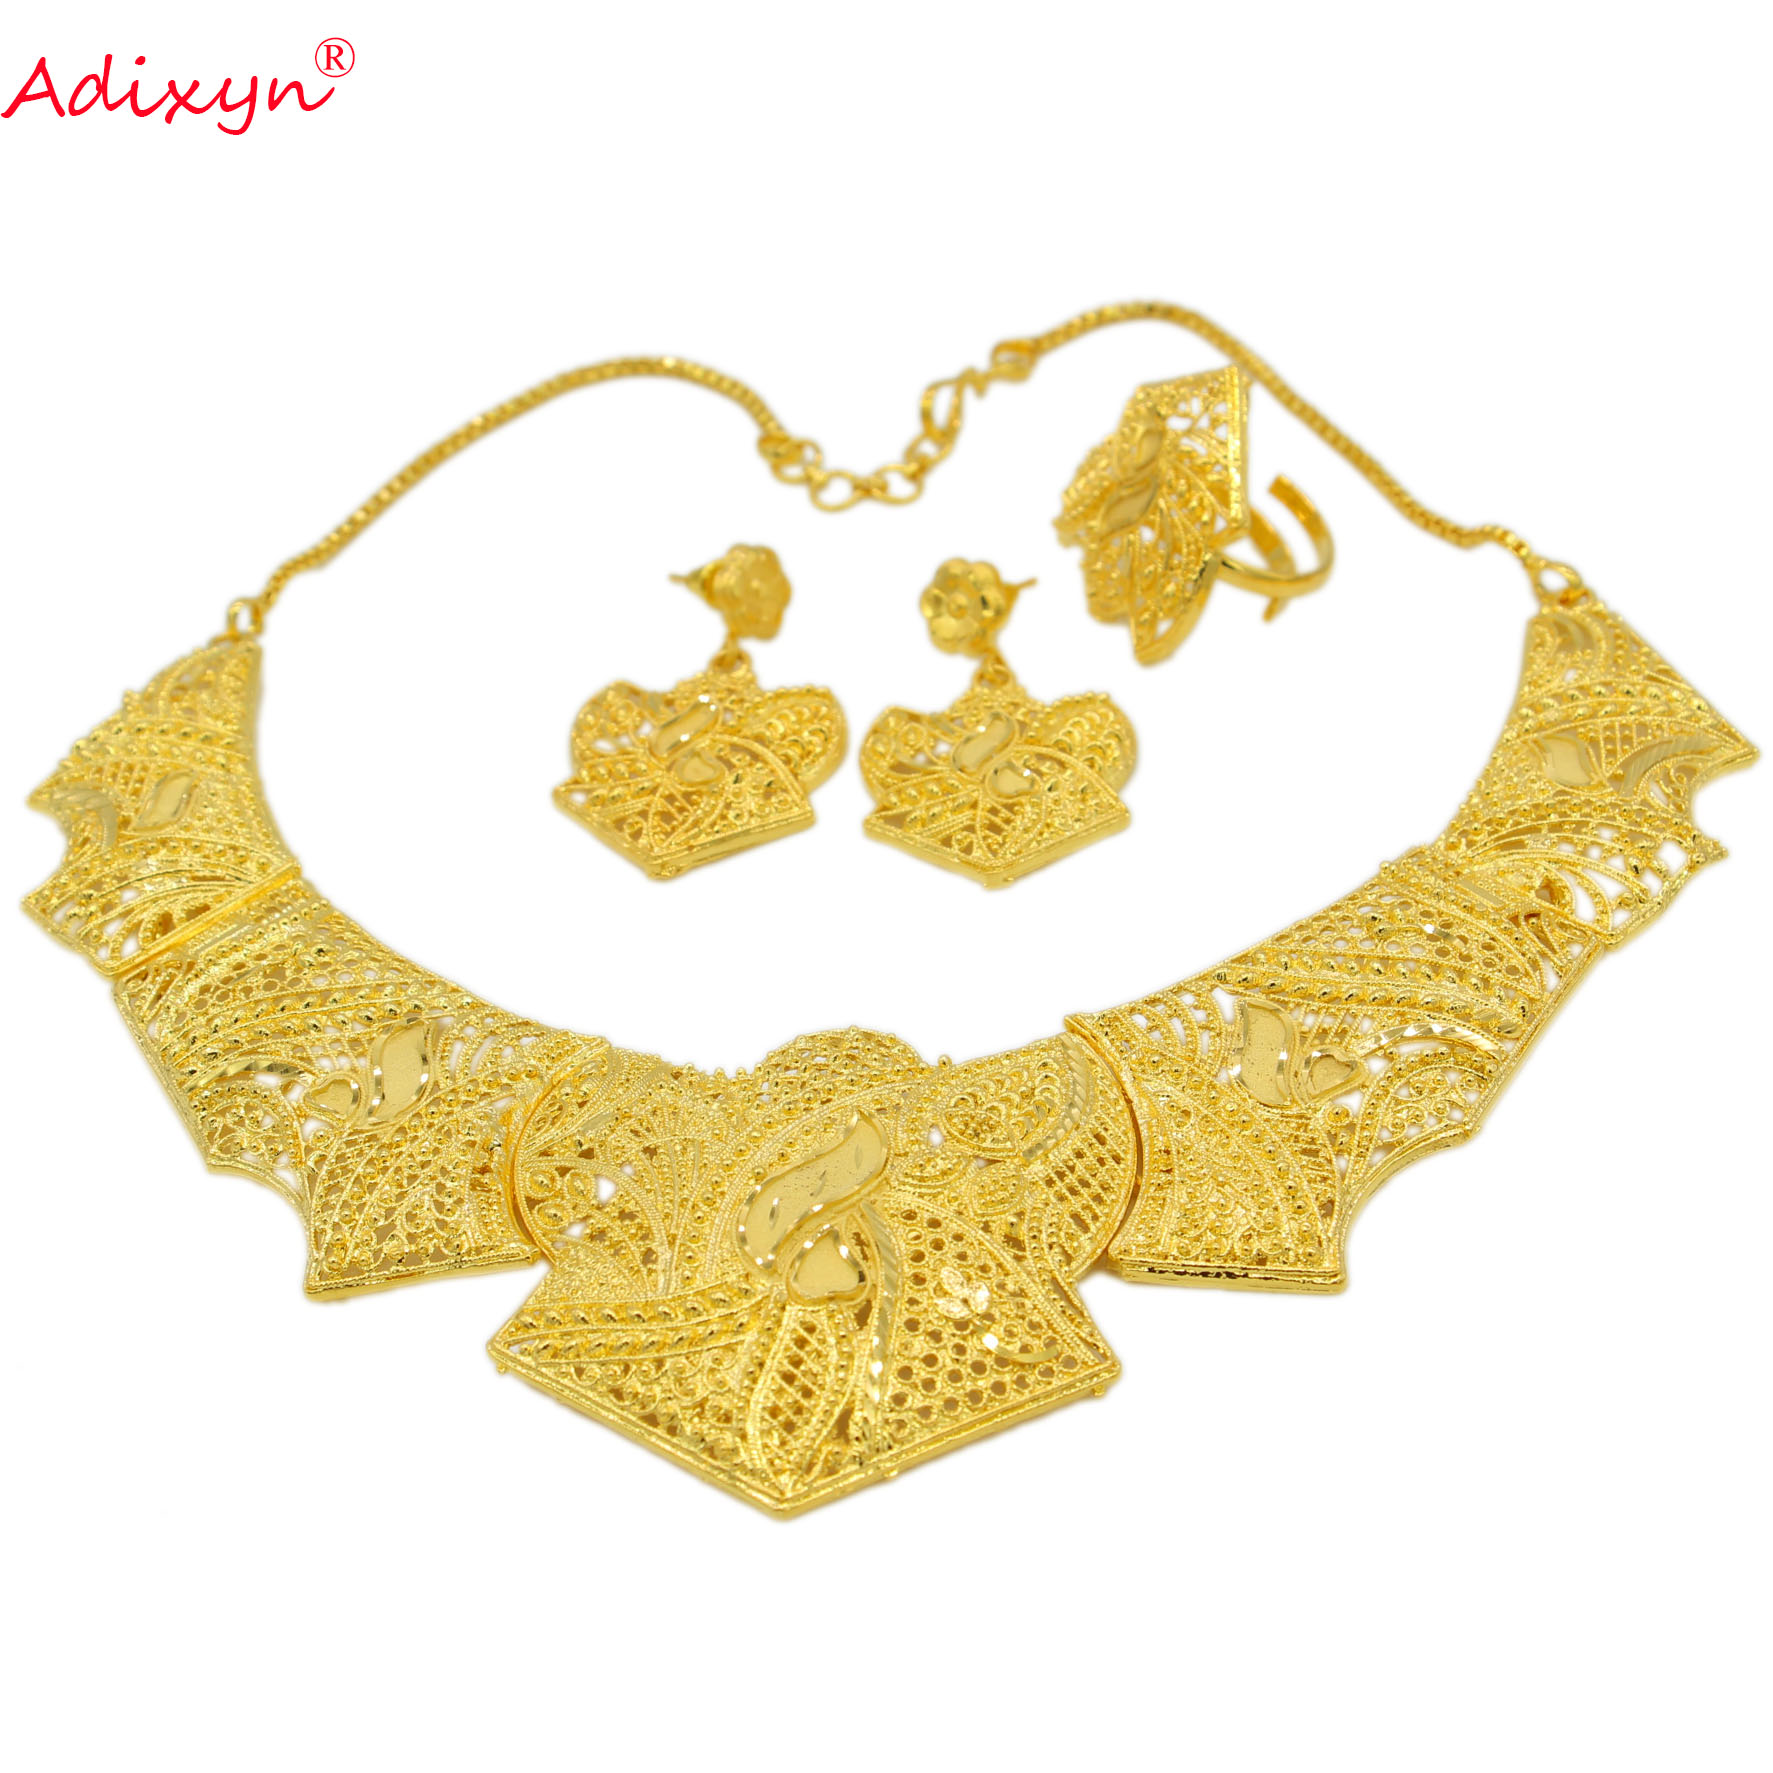 New Necklace Ring Earring Jewelry Set For Women Girls Gold Color Copper Heart African Ethiopian Dubai New Necklace/Ring/Earring Jewelry Set For Women/Girls Gold Color/Copper Heart African/Ethiopian/Dubai Wedding/Party Item N071212